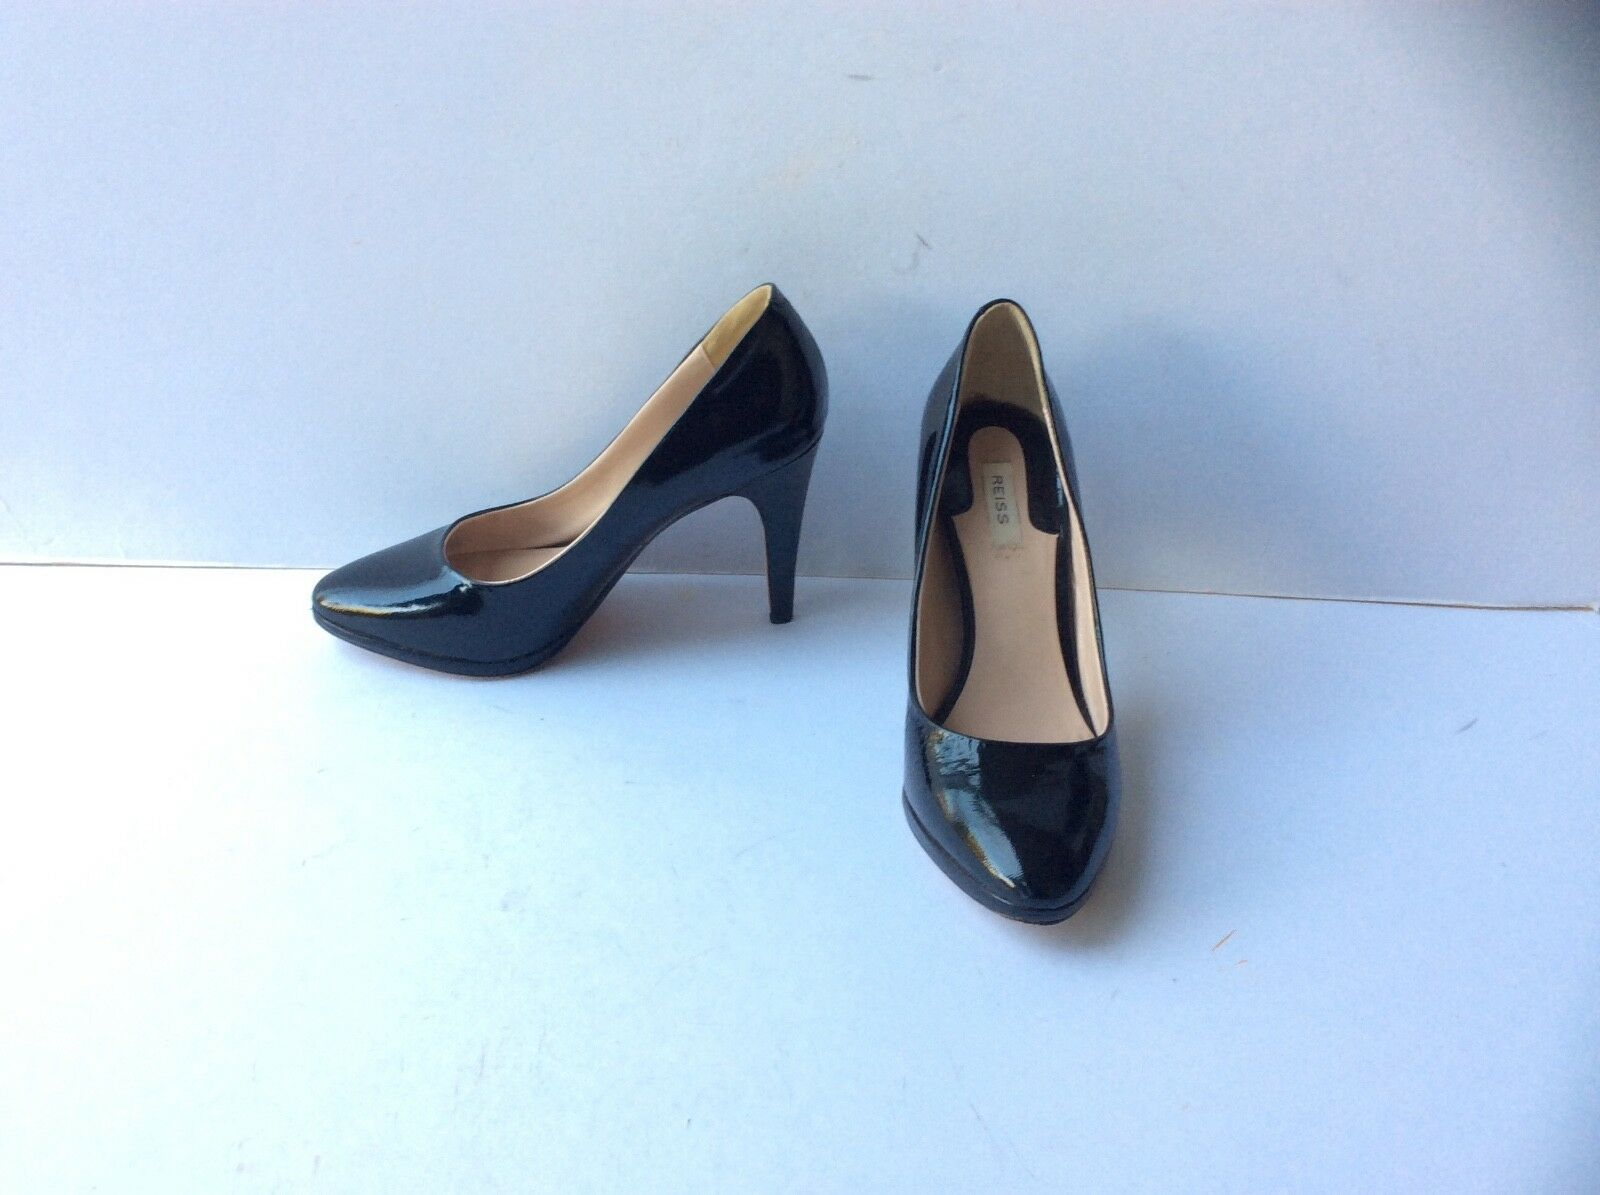 REISS Ladies Black Patent Leather Slip On Stiletto Heel shoes, Size  UK 4  EU 37